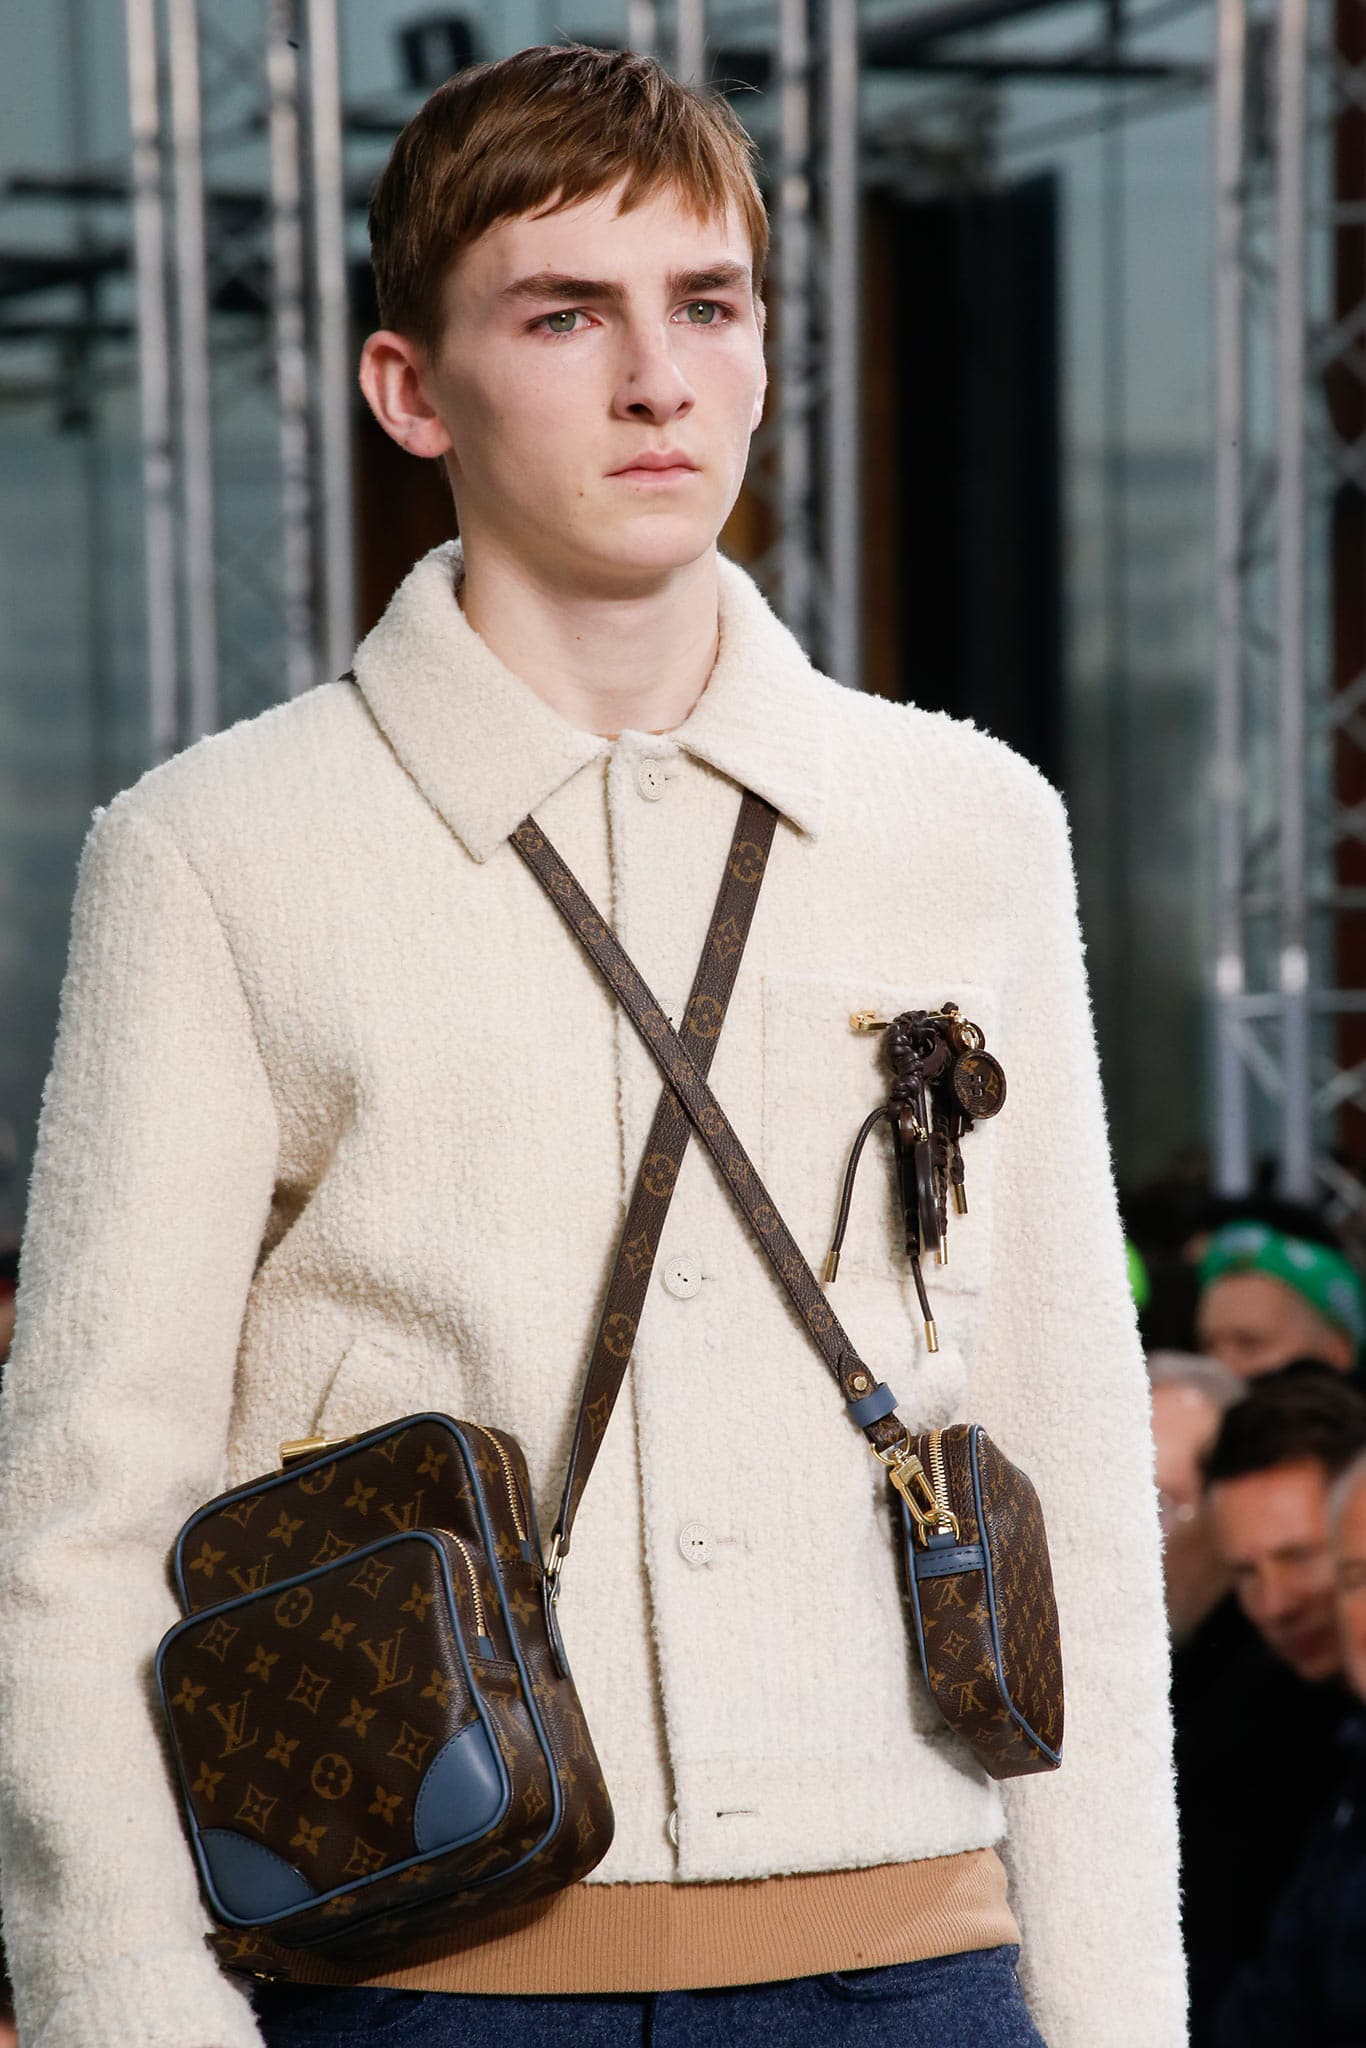 louis vuitton 2015. louis vuitton monogram canvas with blue trim mini messenger bags 2 - fall 2015